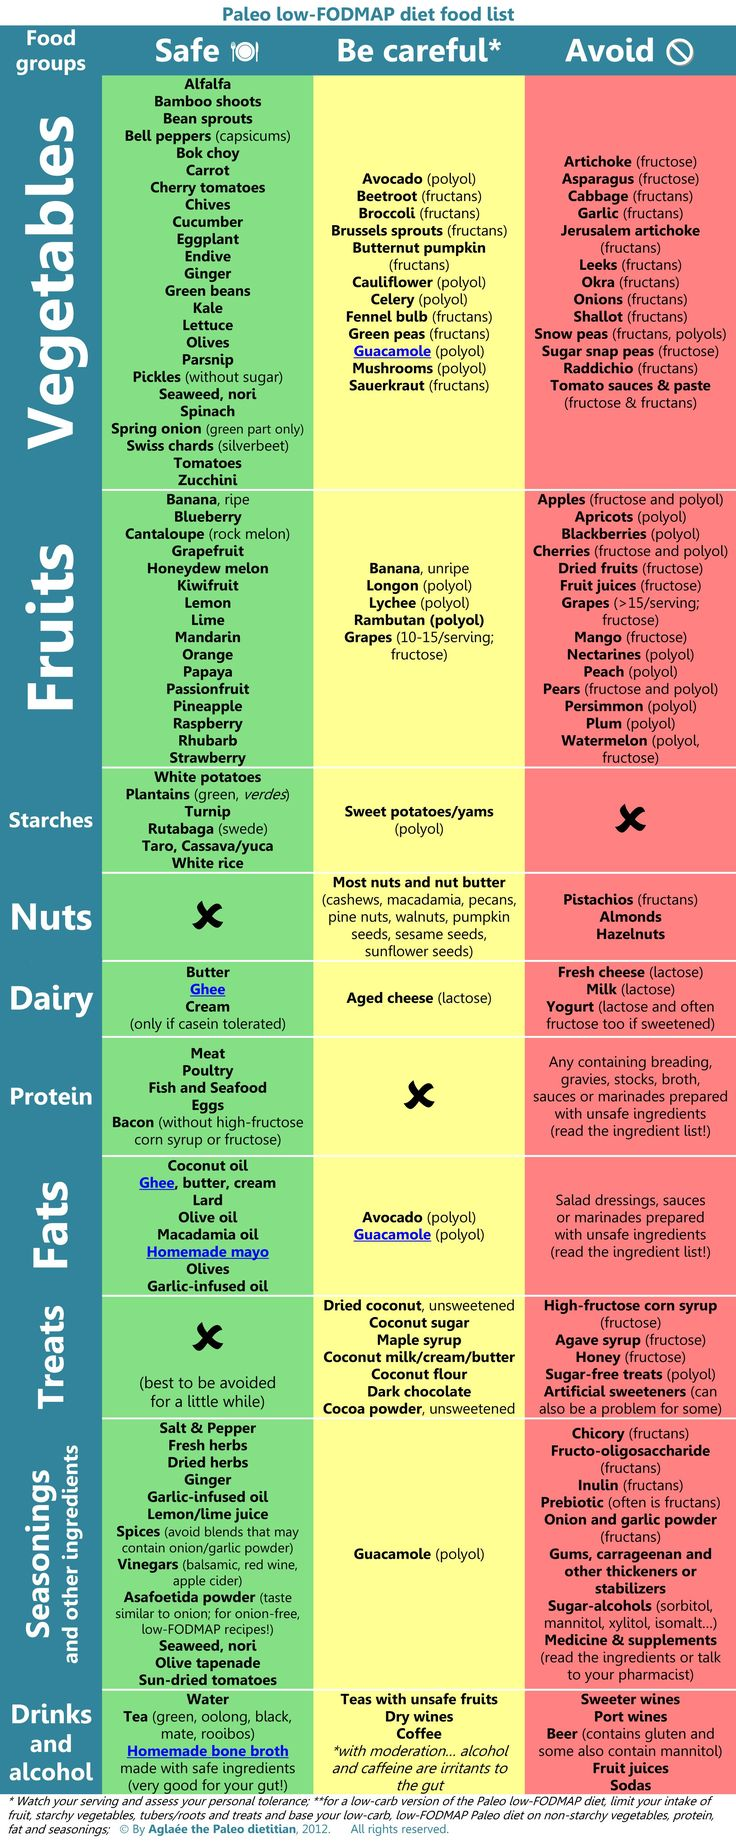 FODMAPs Table for FODMAPs Intolerance (fructose malabsorption) [FODMAPs stands for Fermentable(可發酵的) Oligosaccharides(寡醣), Disaccharides(雙醣), Monosaccharides (單醣) And Polyols(多元醇)] 參考文章: http://www.alanmui.com.hk/2013/02/fodmaps.html